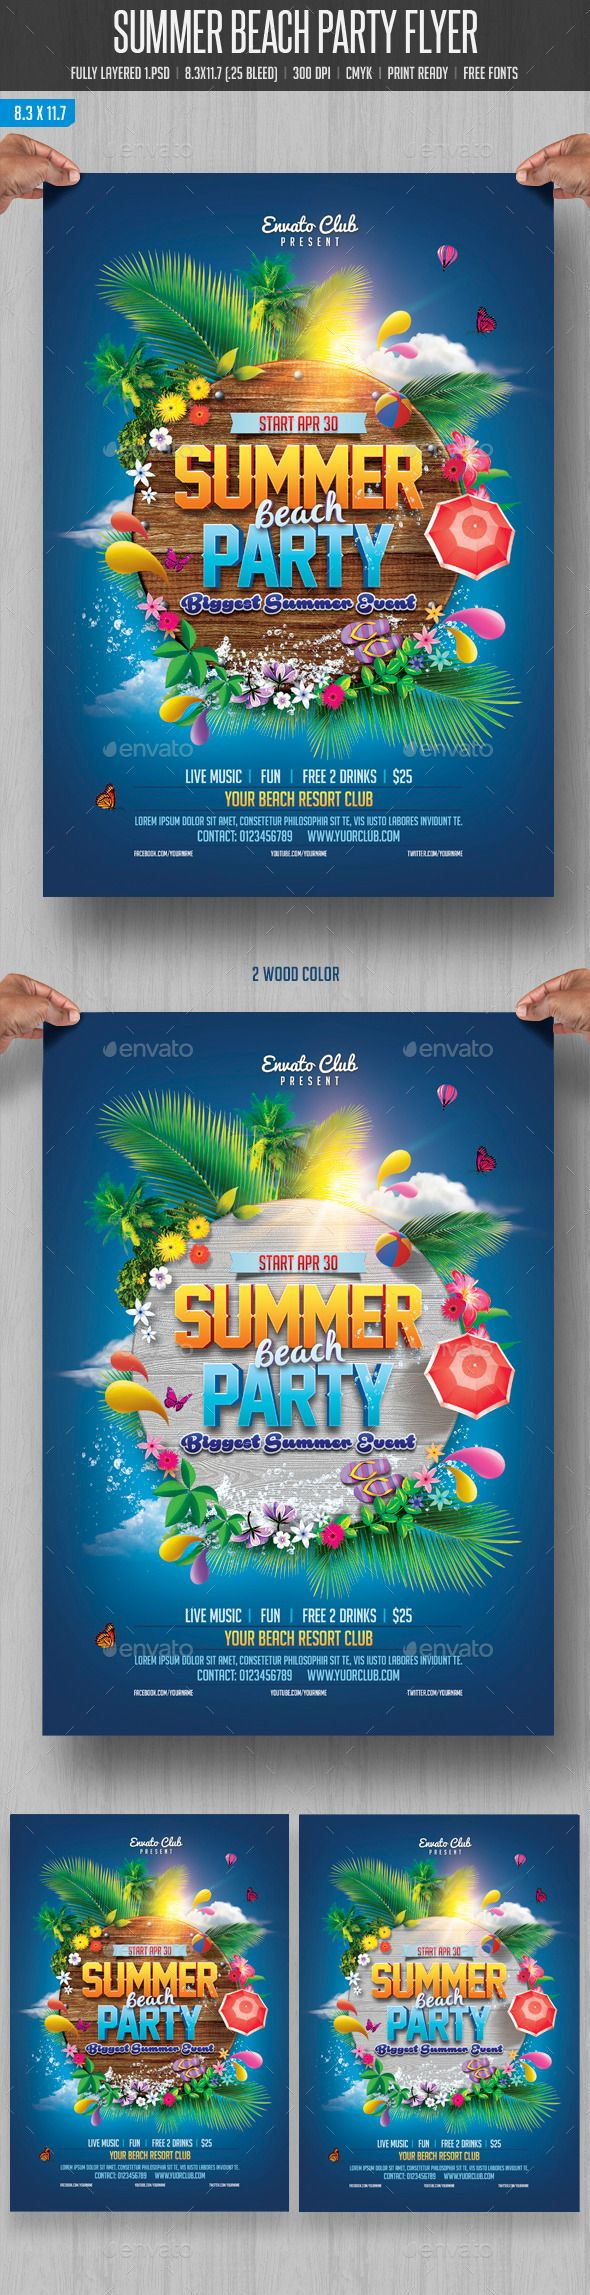 Poster design free download - Summer Beach Party Flyer Tempalte Flyertempalte Download Http Ksioks Com